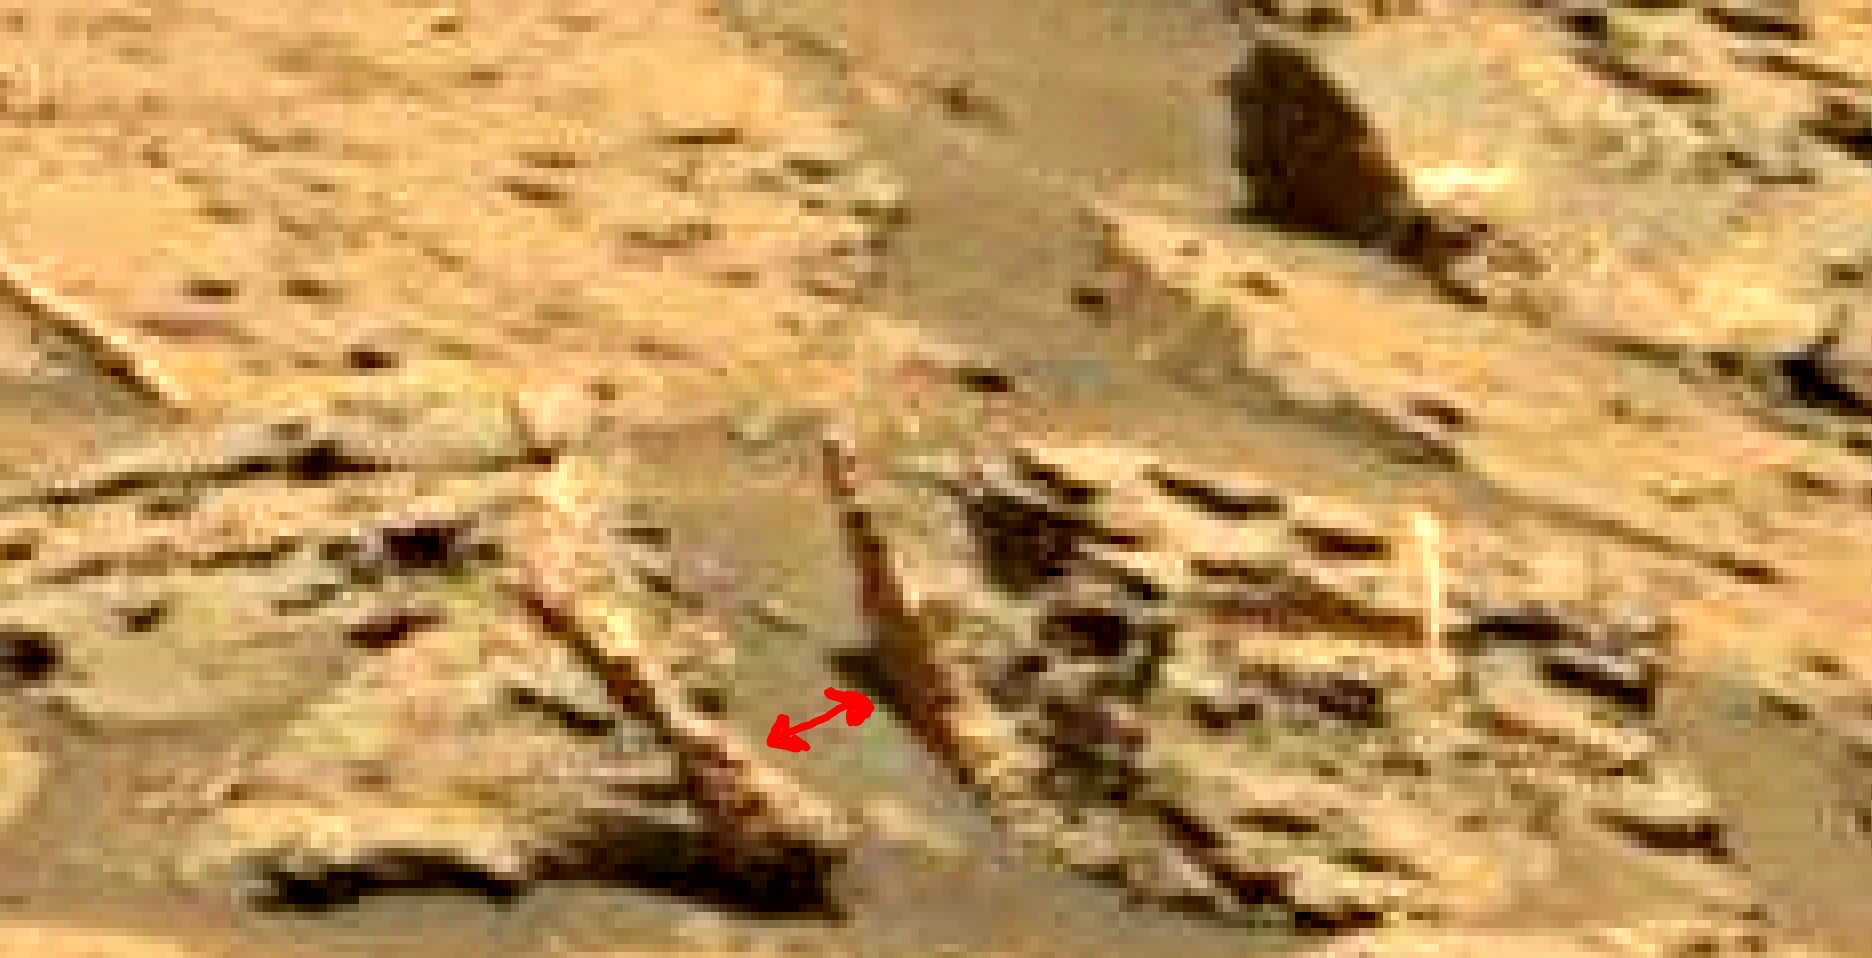 mars sol 1353 anomaly-artifacts 8 was life on mars